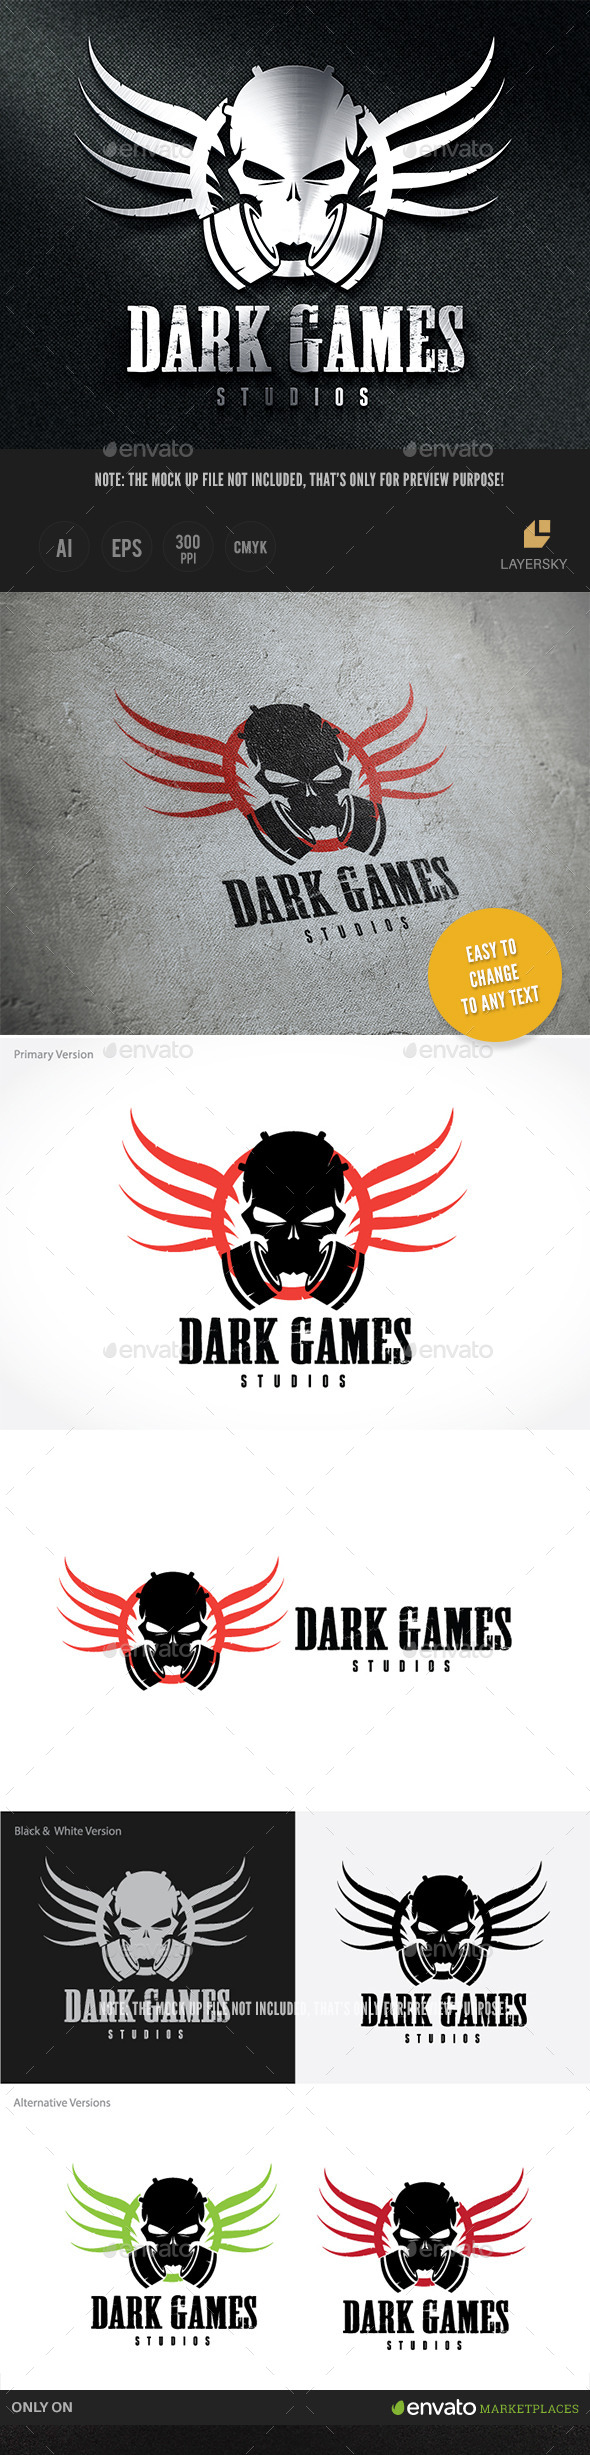 GraphicRiver Dark Game Studios 8843409